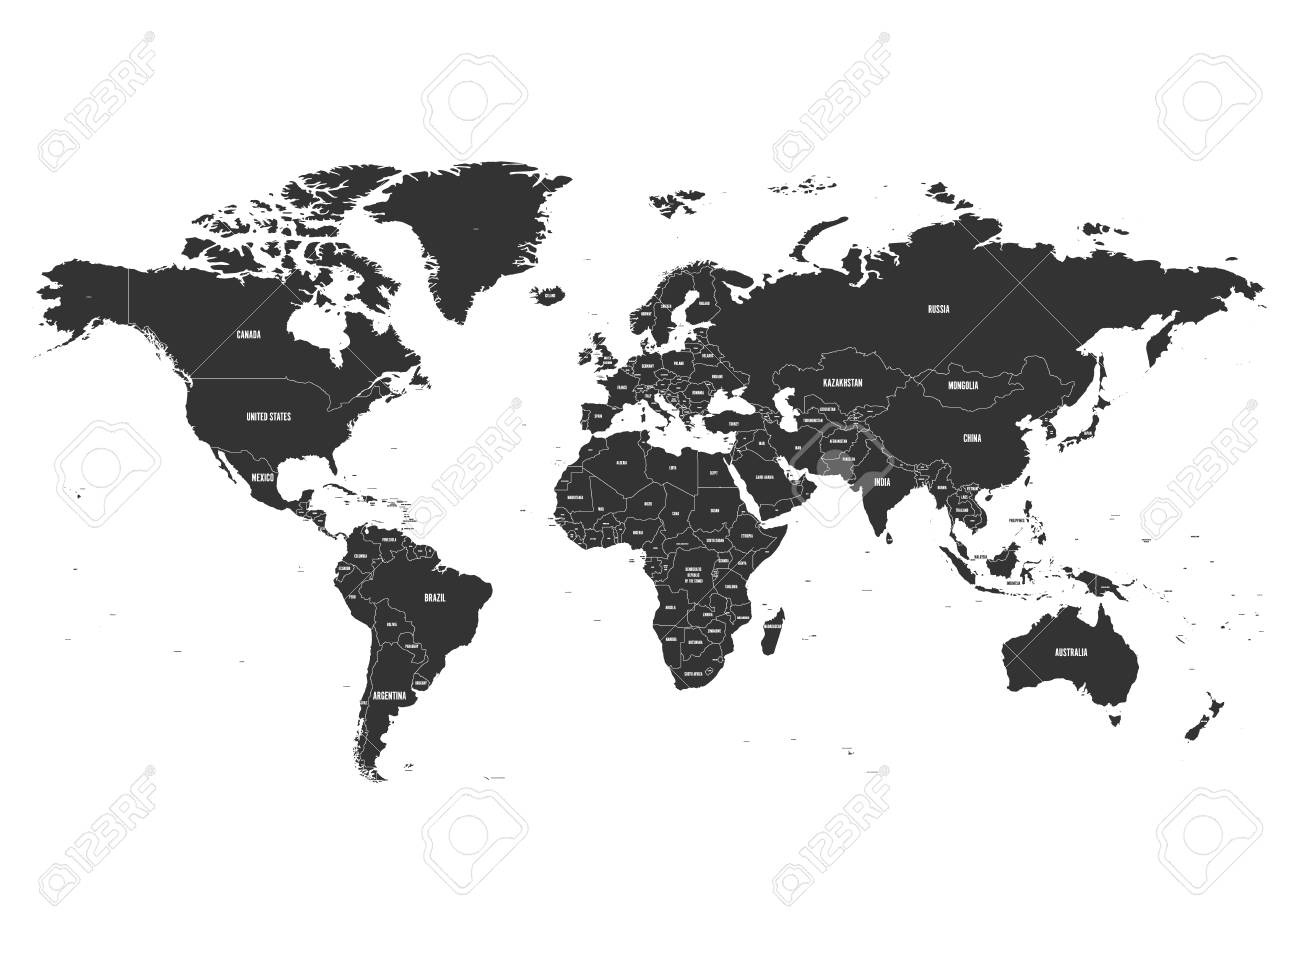 Vector political map of World with state name labeling.